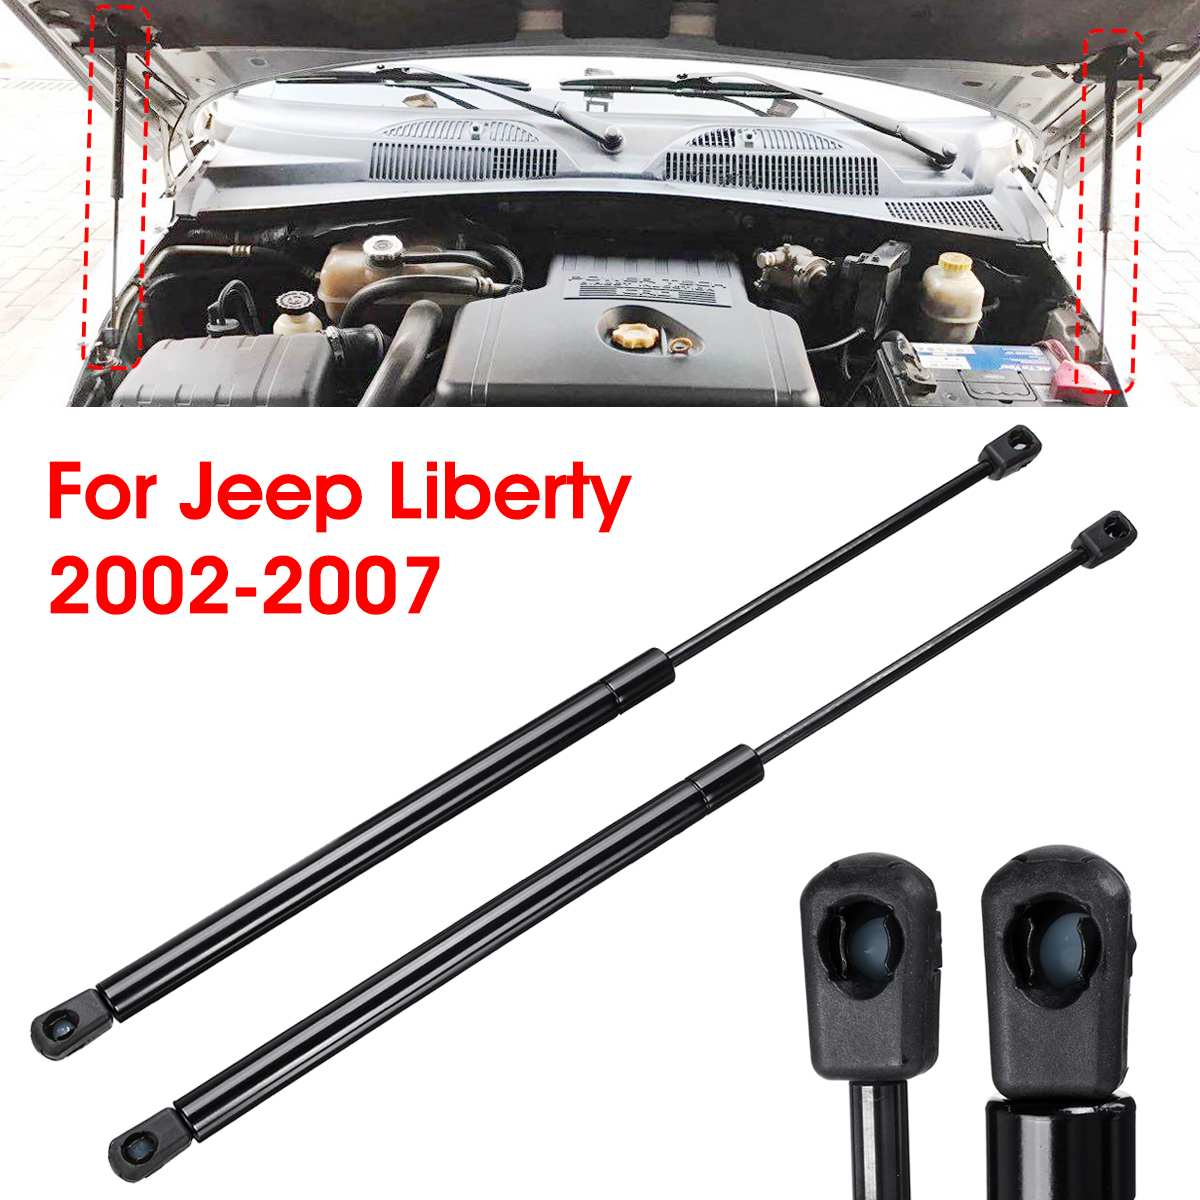 1PC Rear Window Glass Lift Shock Support Gas Spring Strut for Jeep Liberty 02-07